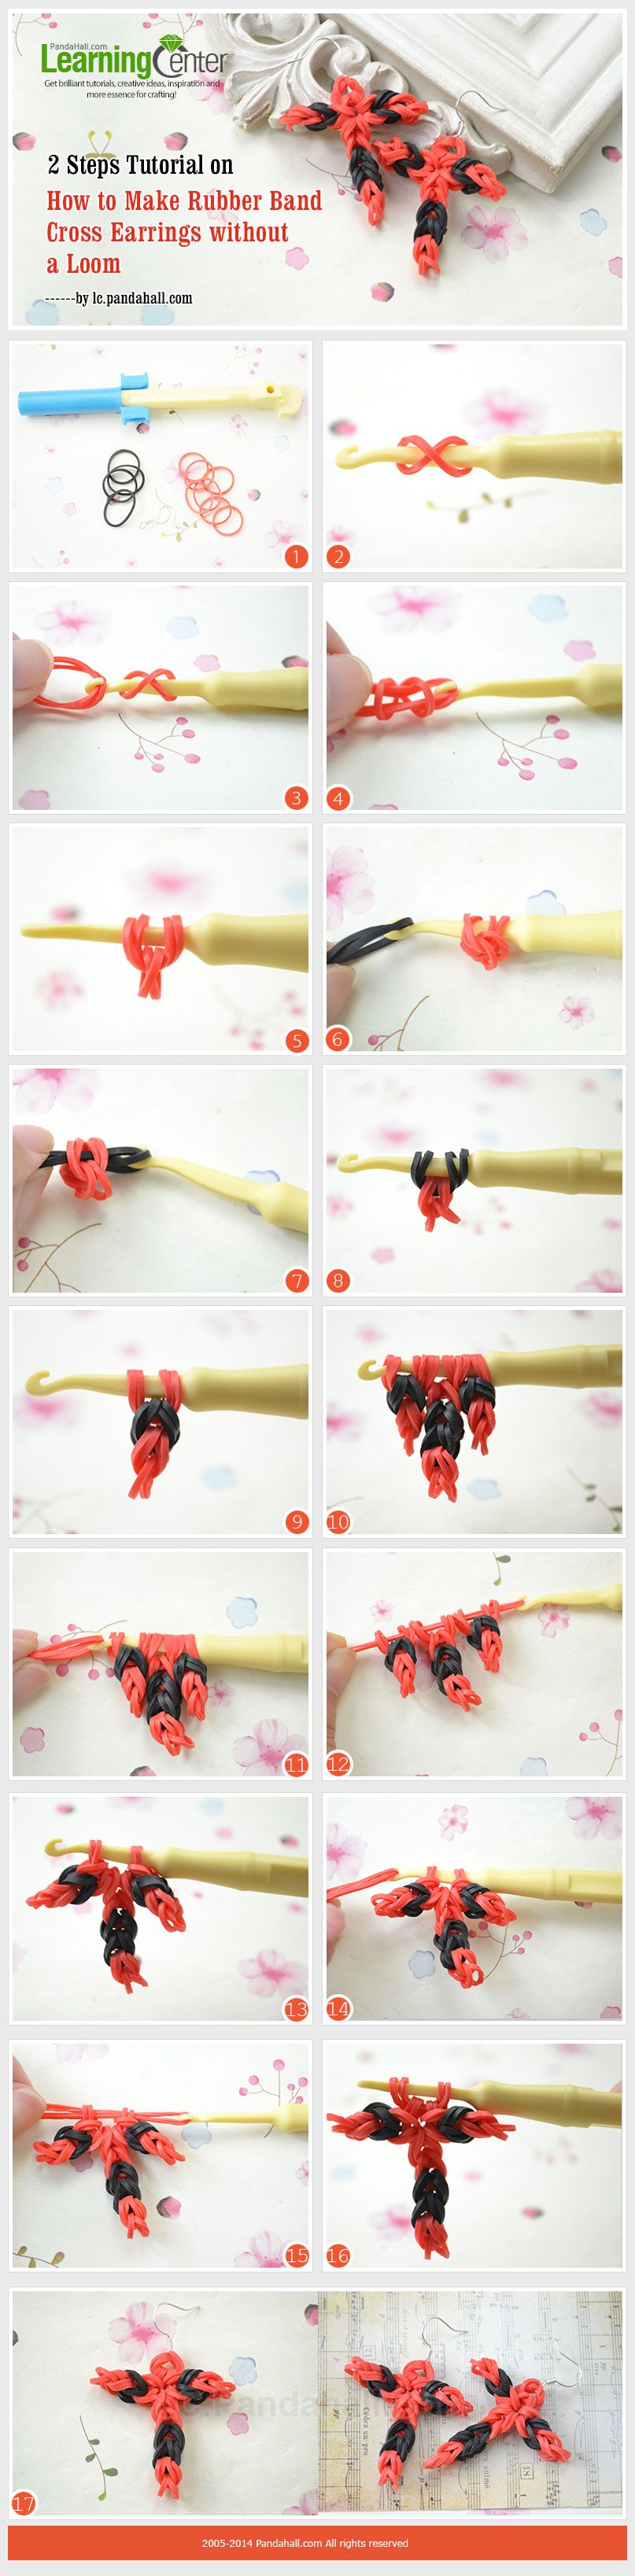 2 Steps Tutorial On How To Make Rubber Band Cross Earrings Without A